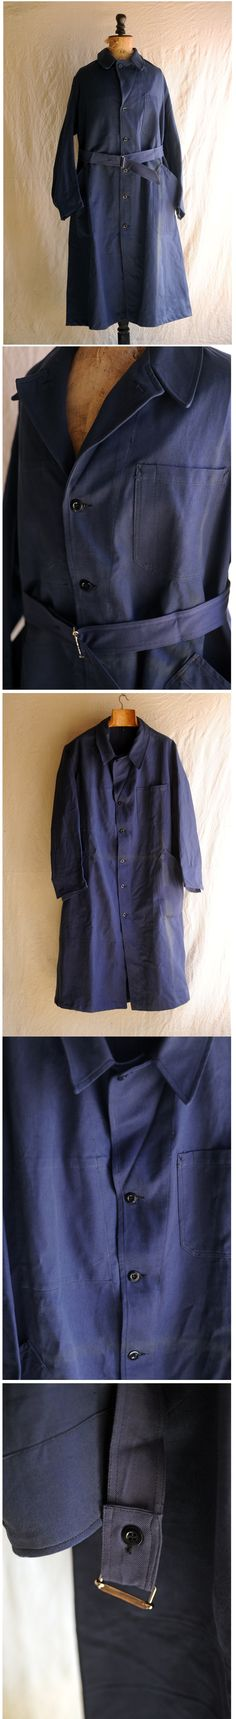 50sフランス軍ヴィンテージインディゴワークコート 30s40sリネン - ヤフオク! Denim Button Up, Button Up Shirts, Pants, Tops, Fashion, Trouser Pants, Moda, Fashion Styles, Women's Pants